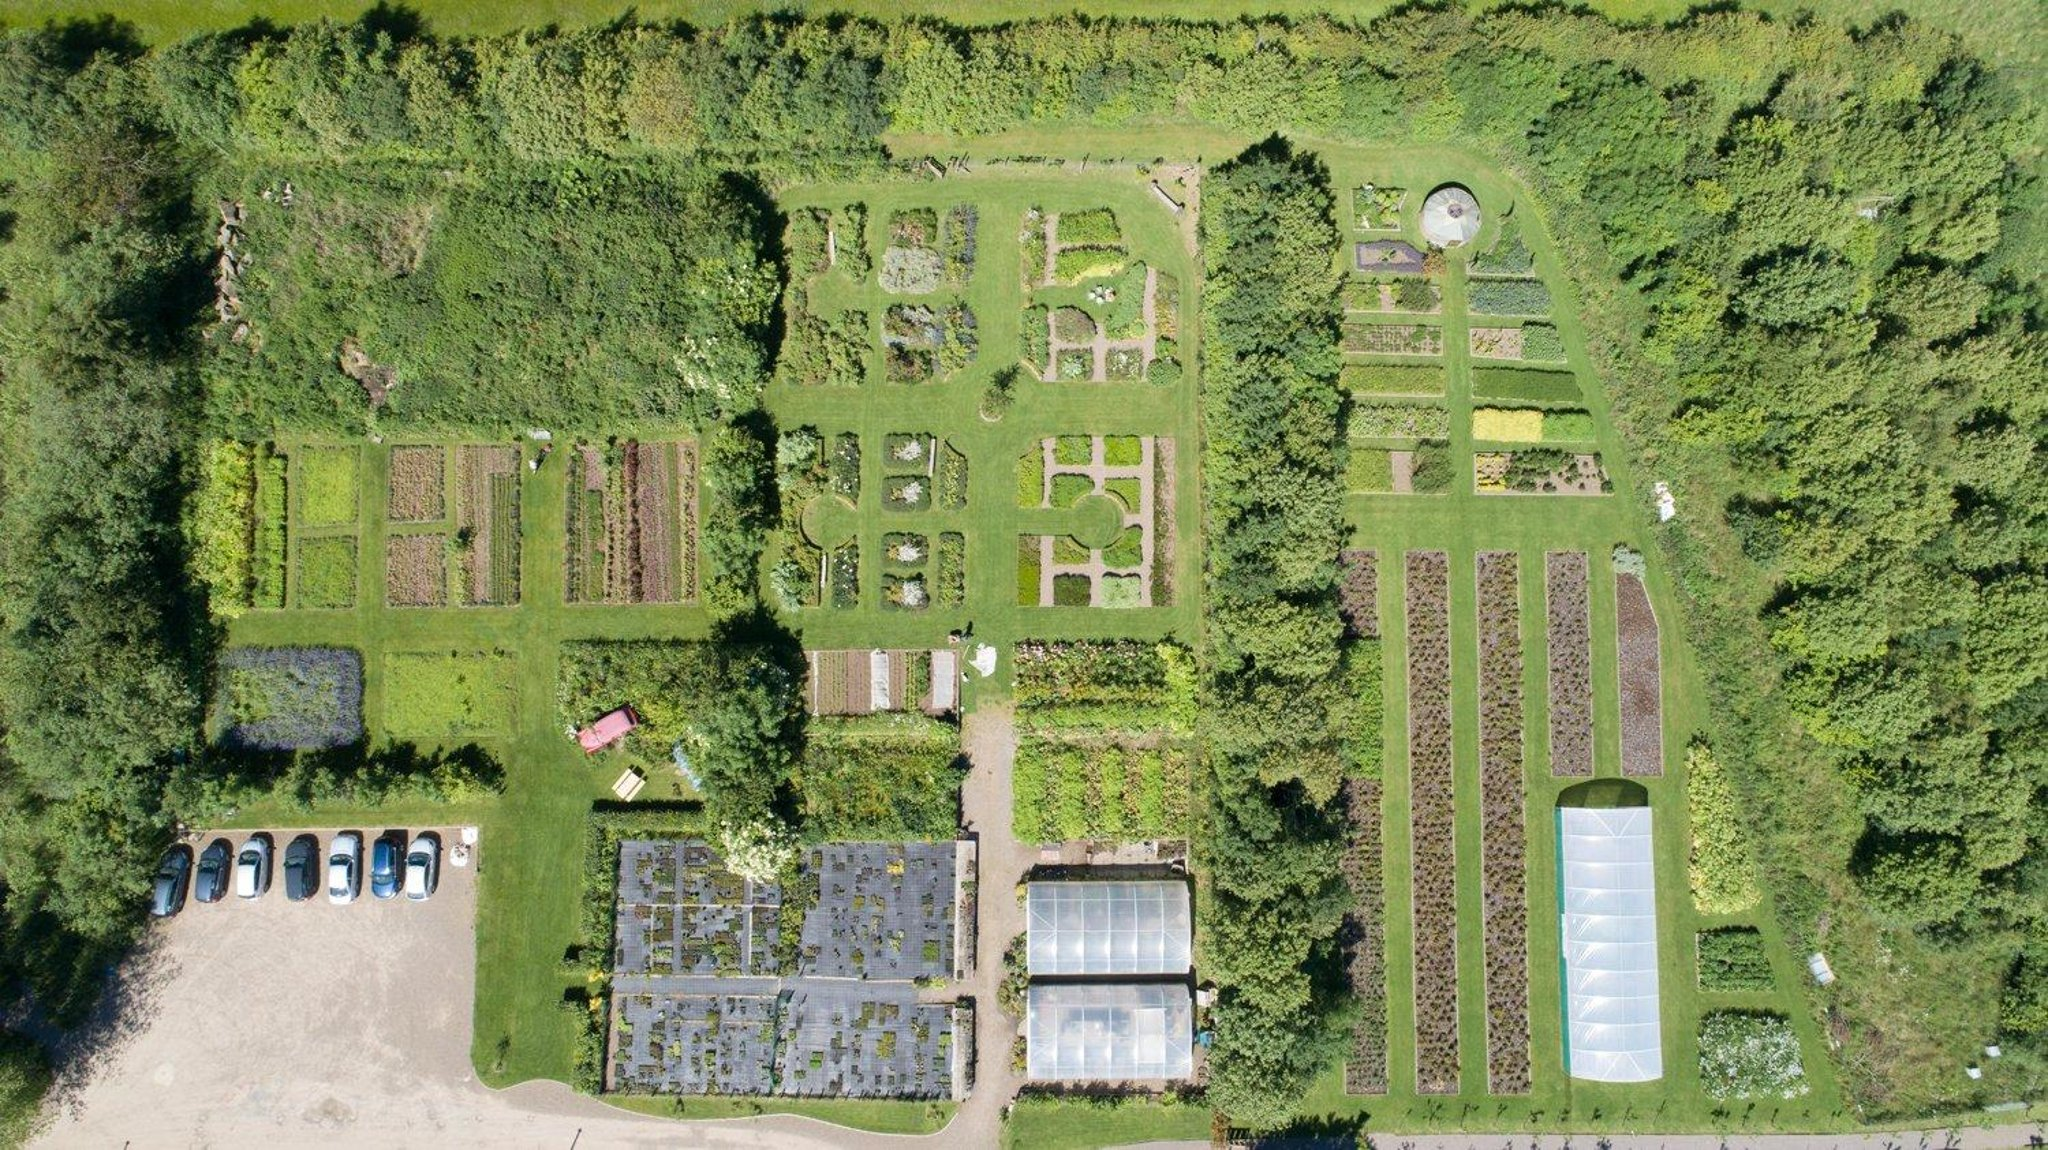 Secret Herb Garden jobs boost with planned visitor centre and tasting room